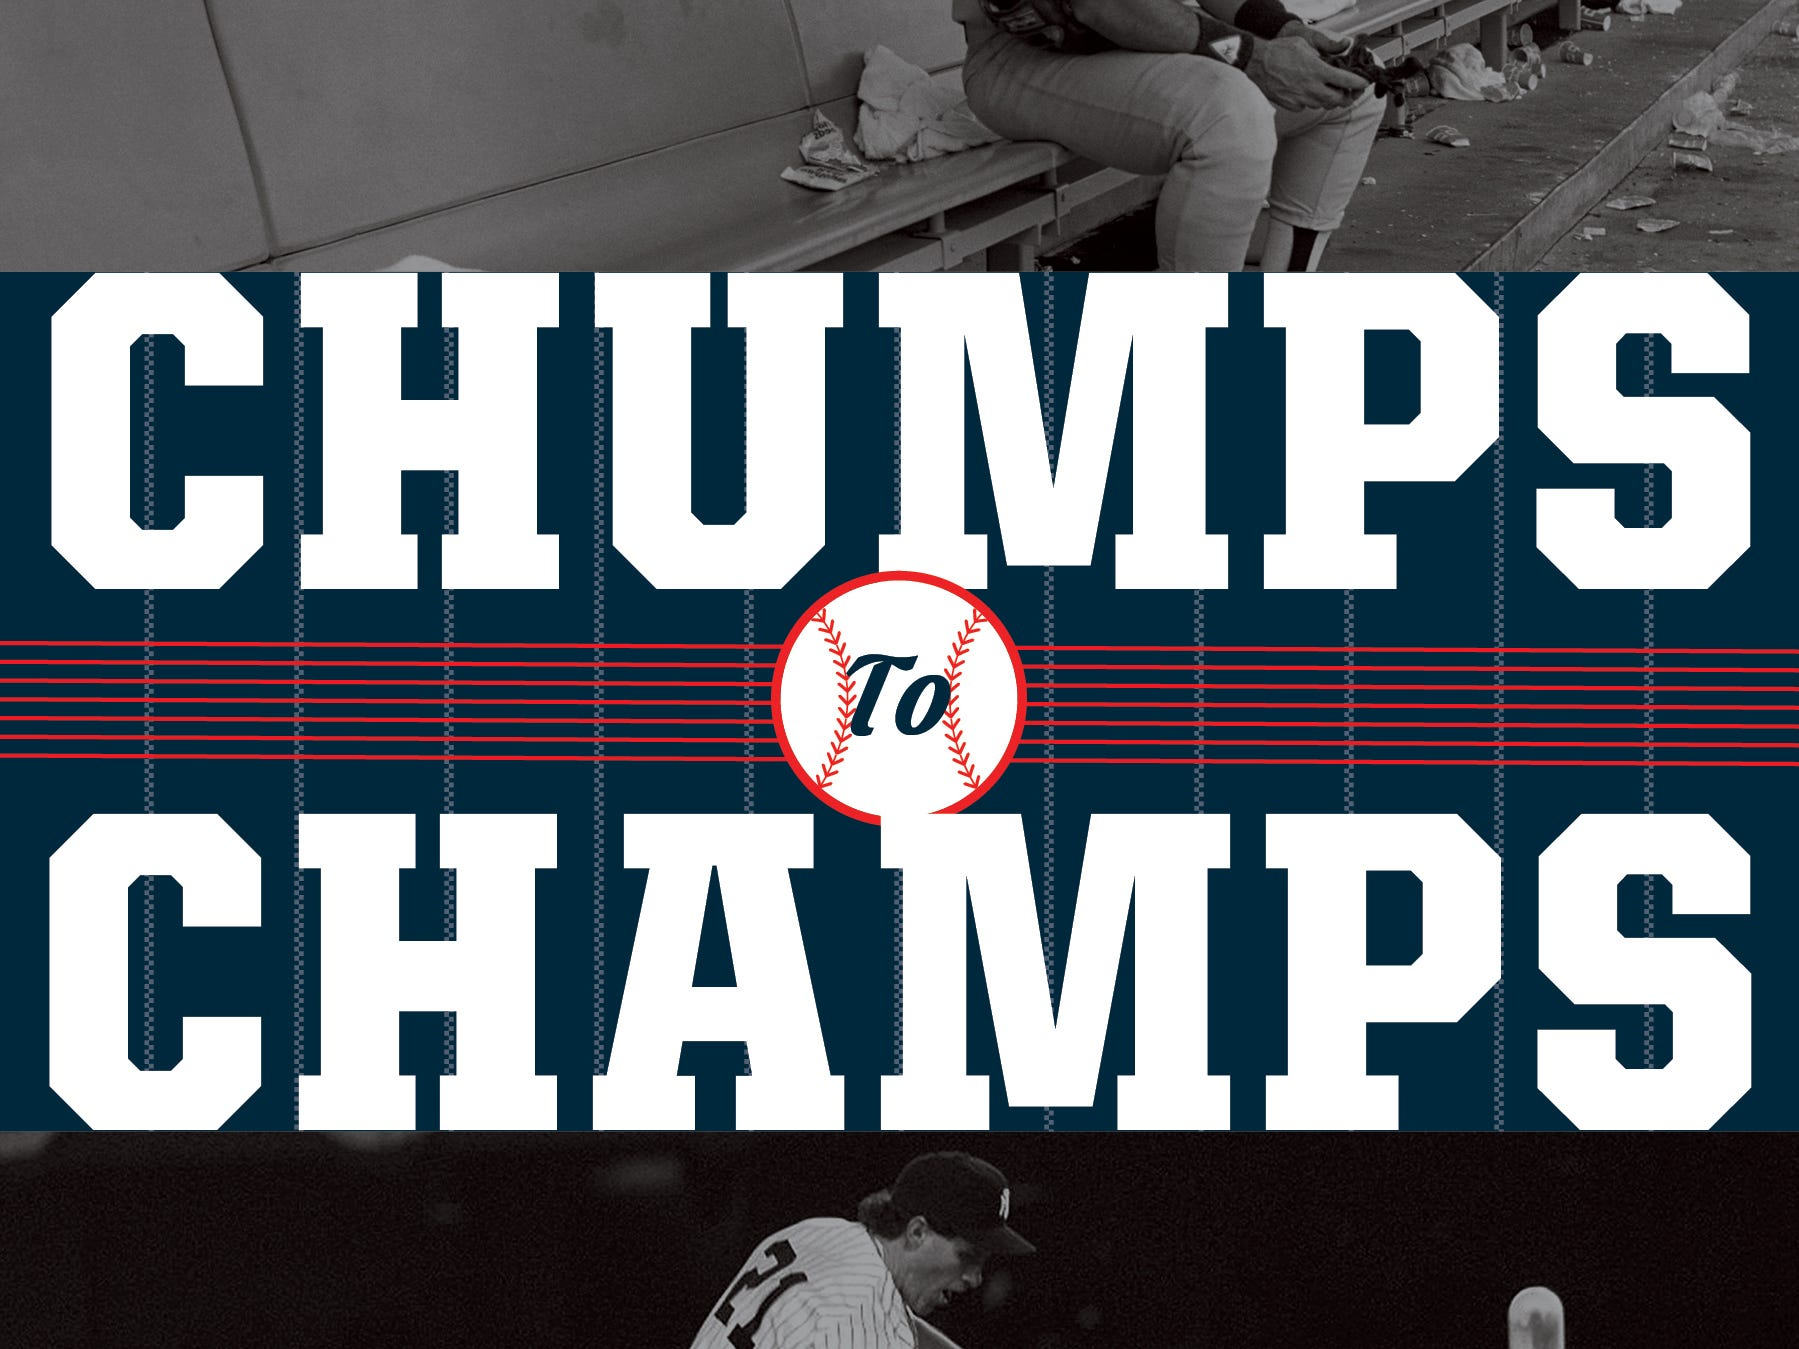 Chumps to Champs: How the Worst Teams in Yankees History Led to the '90s Dynasty. By Bill Pennington. Houghton Harcourt Mifflin